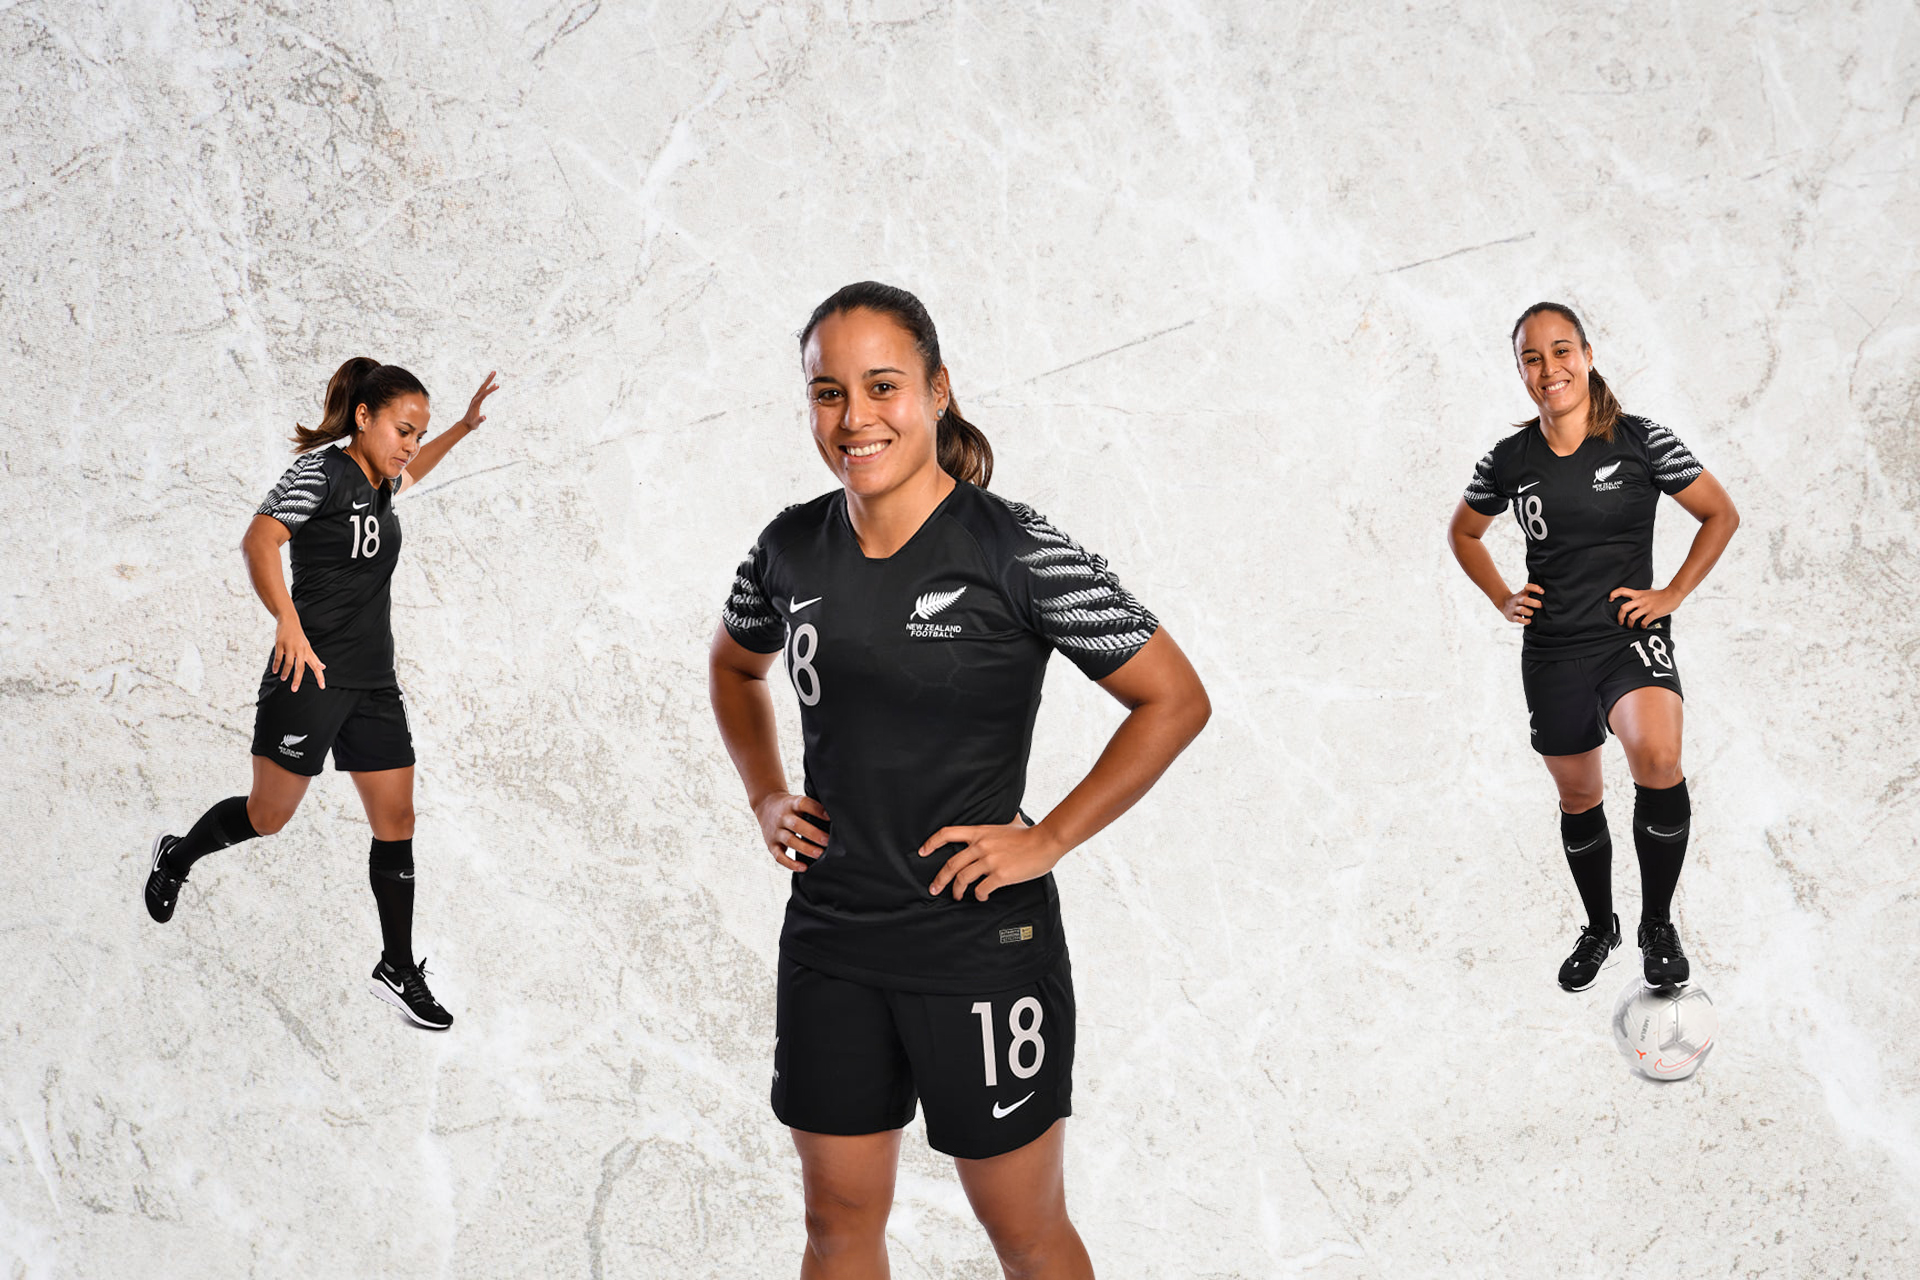 Aimee Phillips New Zealand International Football Athlete